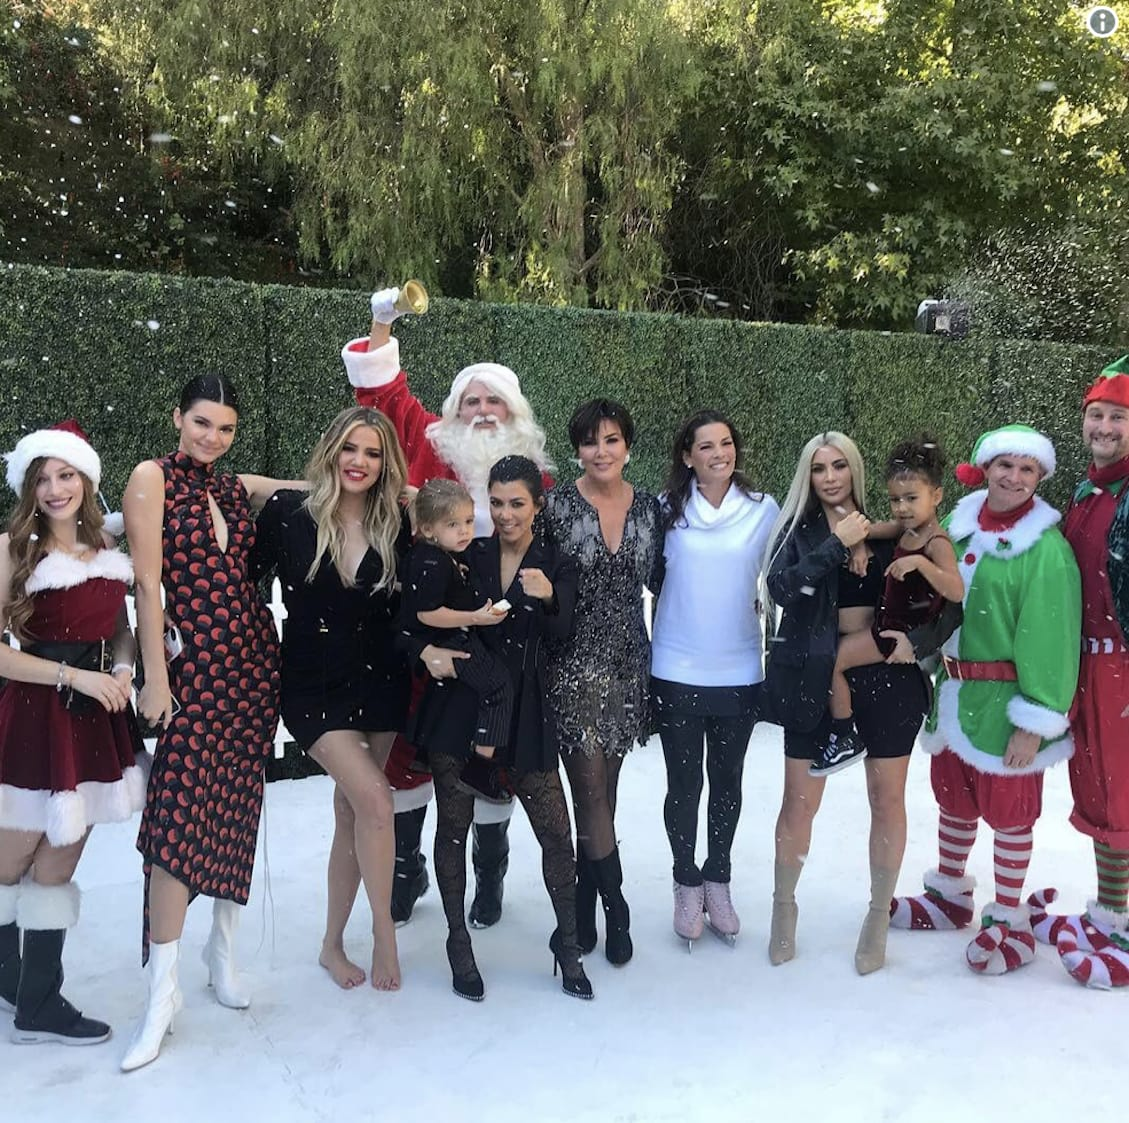 Kardashian Christmas Photo Released... But Where\'s Kylie?!? - The ...